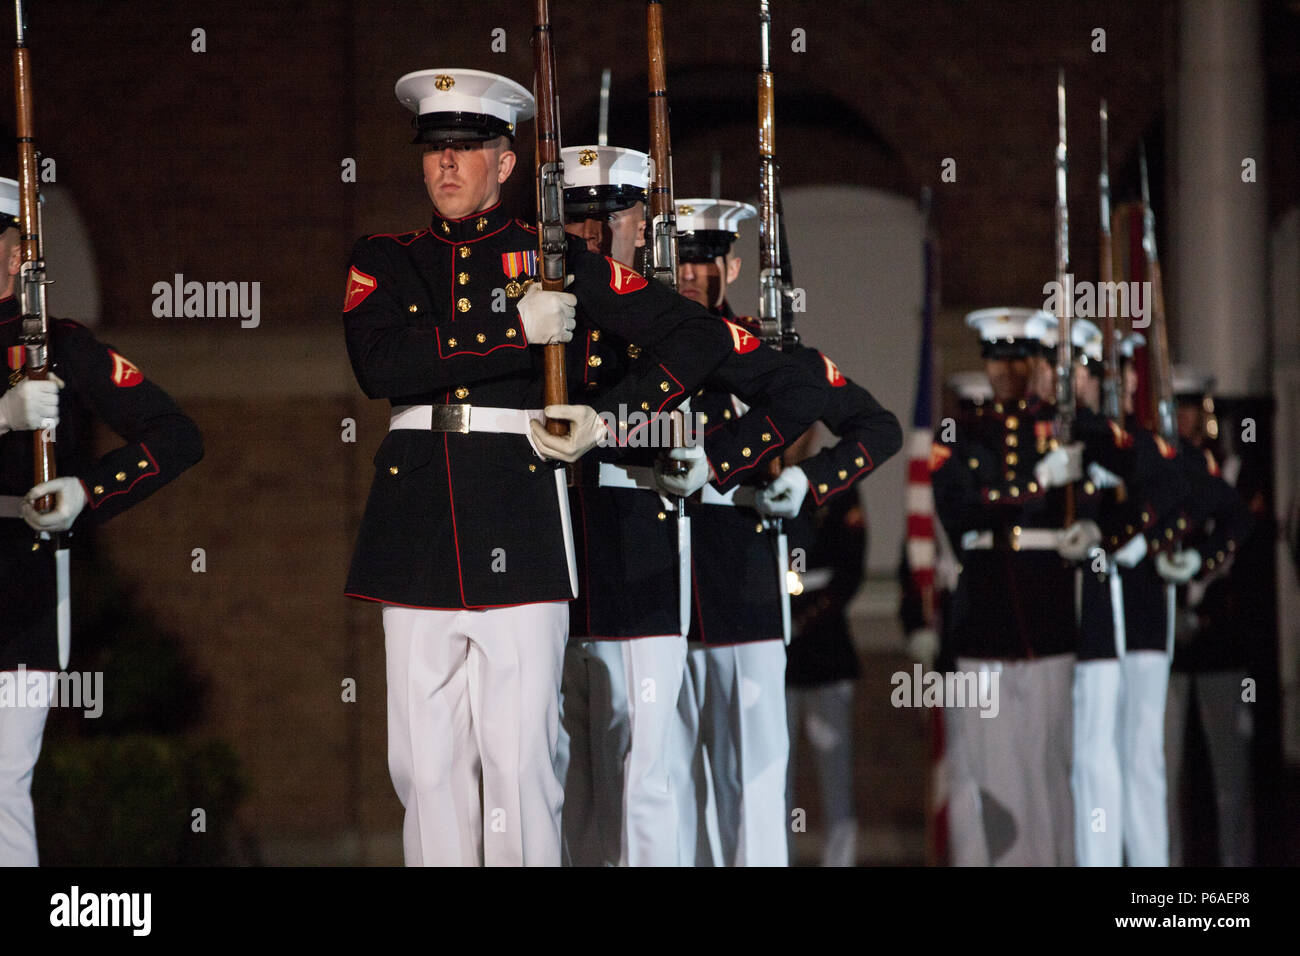 Members of the Silent Drill Platoon with Marine Barracks Washington (MBW) perform during an evening parade at MBW, Washington, D.C., April. 29, 2016. The guest of honor was Gen. Robert B. Neller, the 37th commandant of the Marine Corps, and the hosting official was Col. Benjamin T. Watson, commanding officer, Marines Barracks Washington. The evening parade summer tradition began in 1934 and features the Silent Drill Platoon, the U.S. Marine Band, the U.S. Marine Drum and Bugle Corps and two marching companies. More than 3,500 guests attend the parade every week. (U.S. Marine Corps photo by Lan Stock Photo